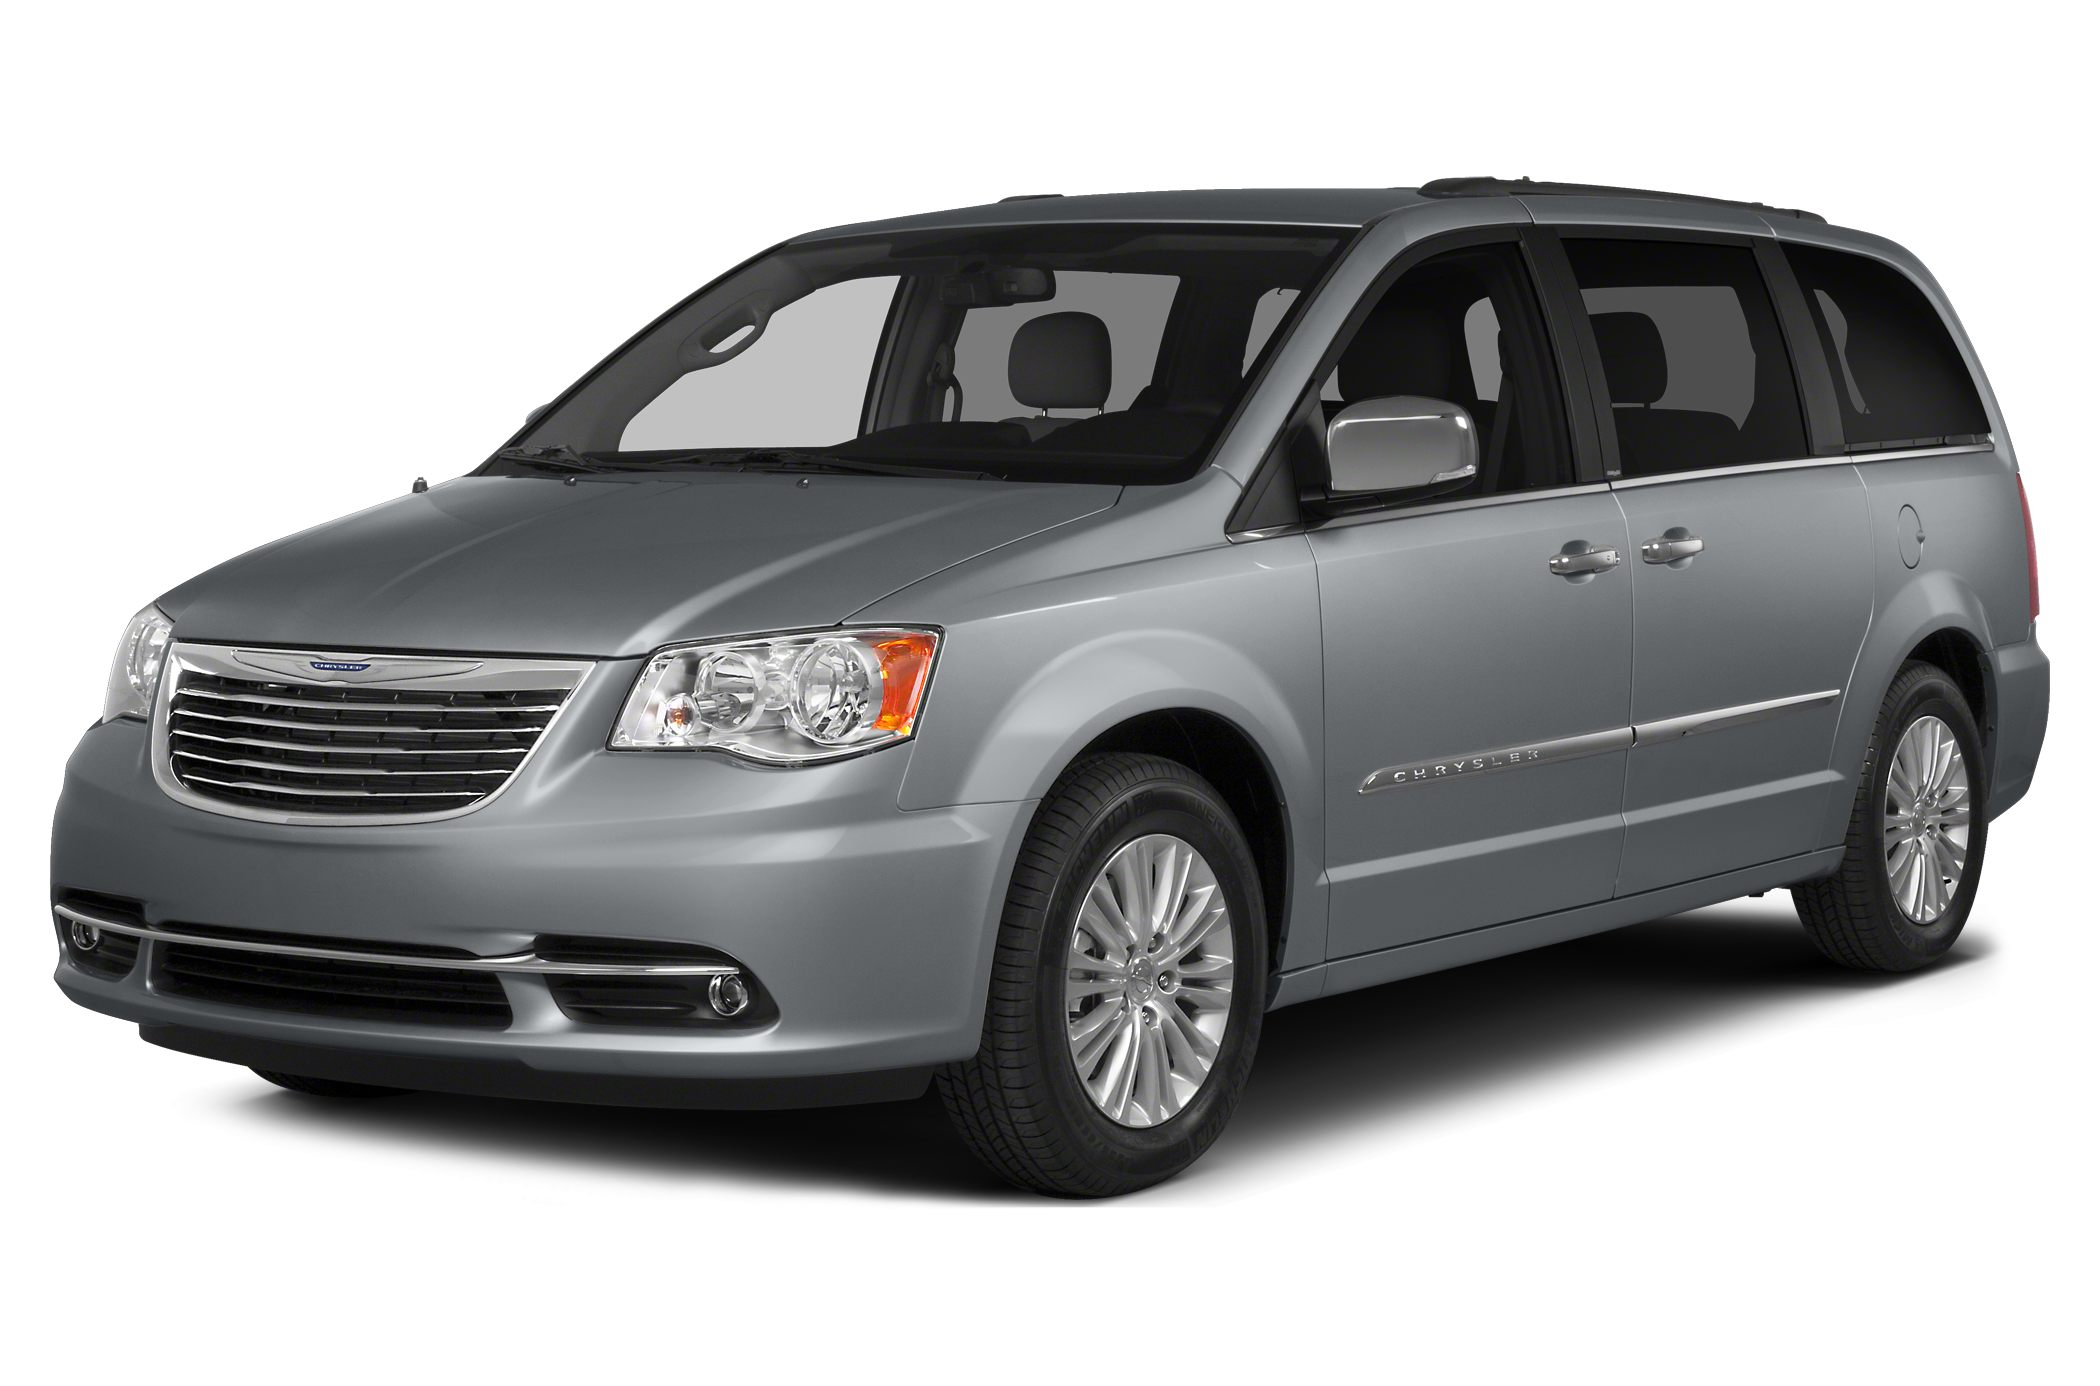 2014 Chrysler Town & Country Touring-L Minivan for sale in Pampa for $27,400 with 35,836 miles.